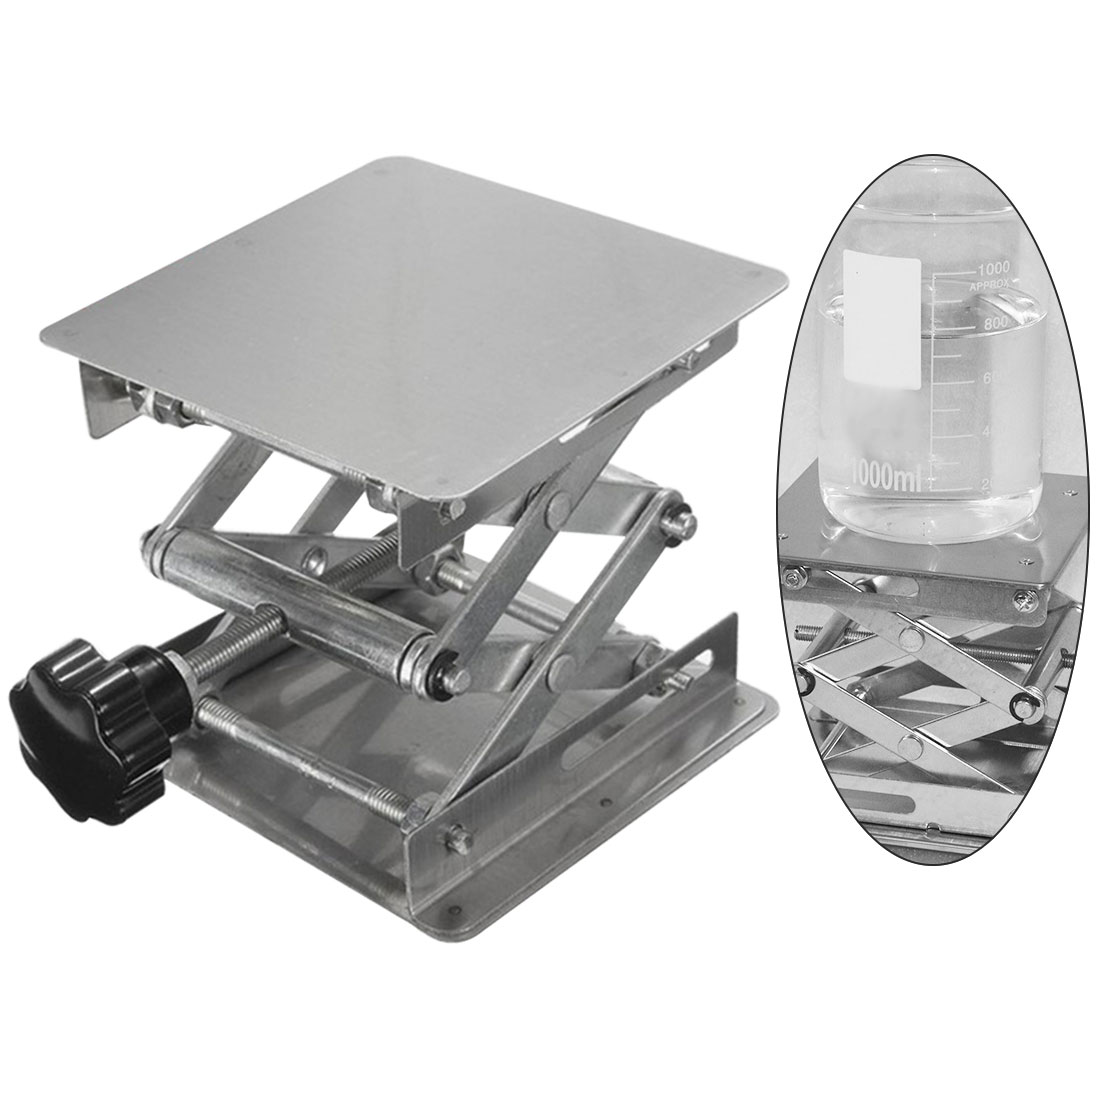 New Stainless Steel Adjustable Drill Lift Laboratory Lifting Platform Table Bench Lifter Router Shank Height Woodworking Lab